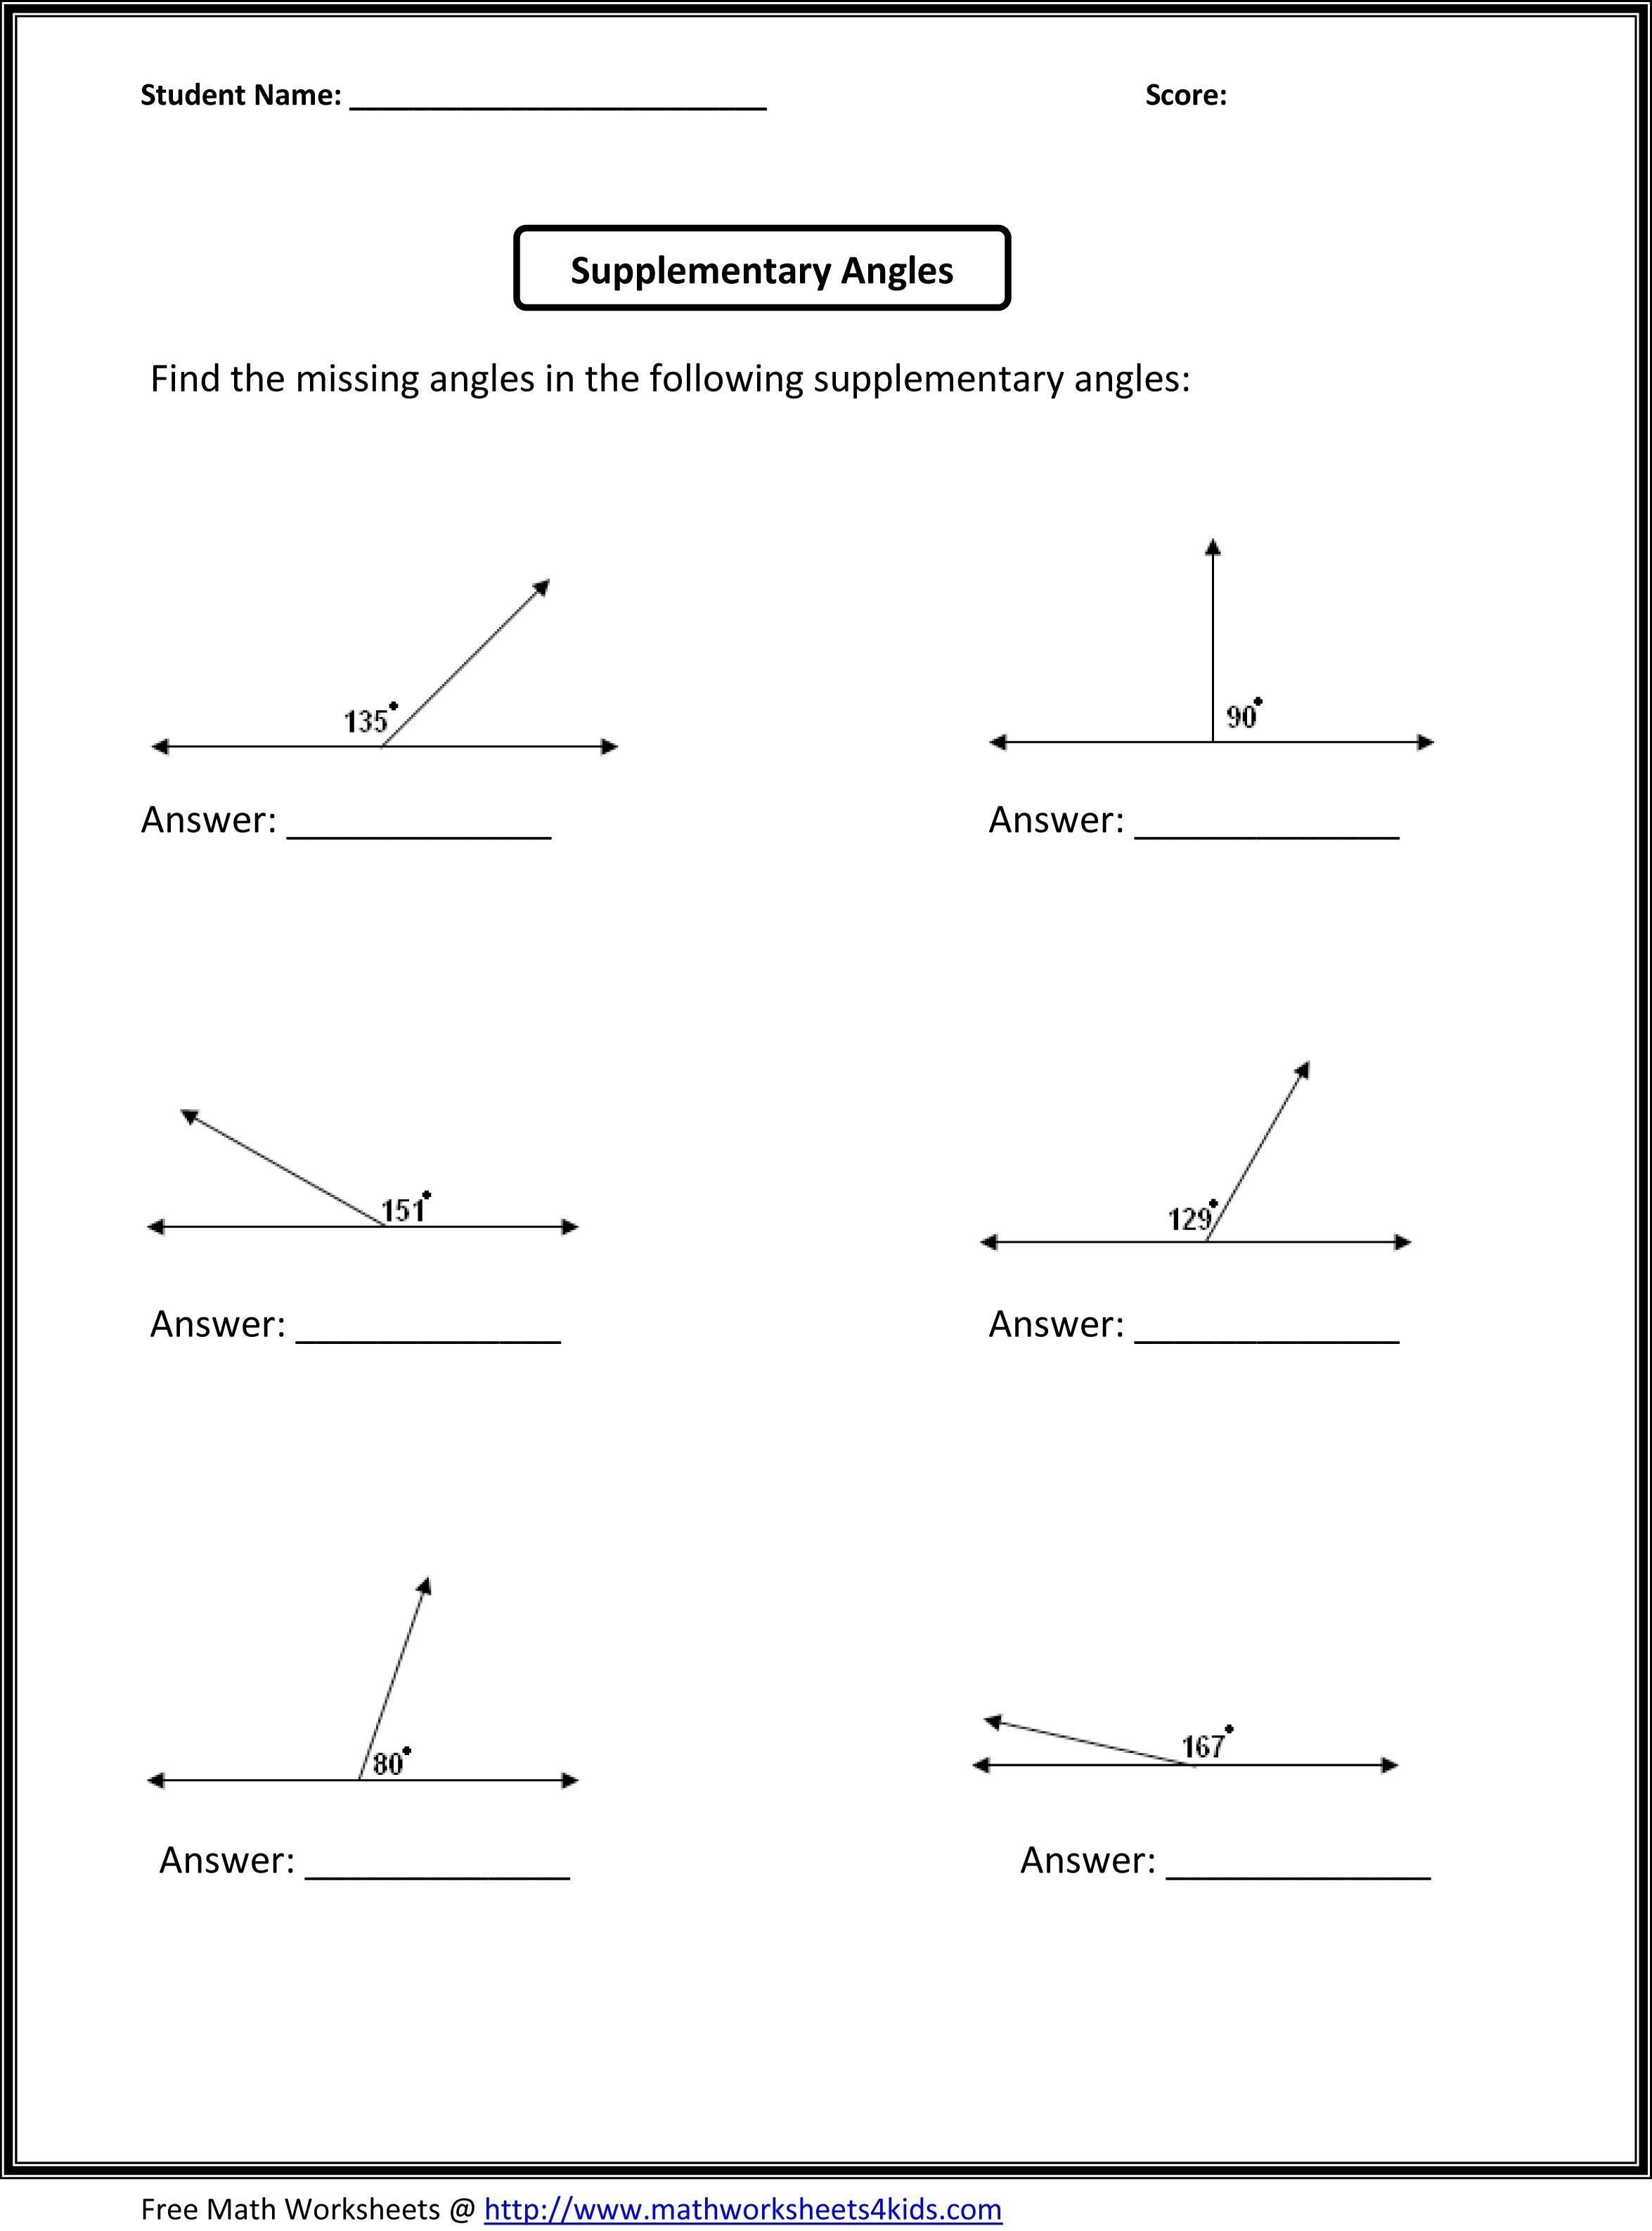 Bunch Ideas Of High School Geometry Worksheets With Answers On Free Intended For Free Geometry Worksheets For High School